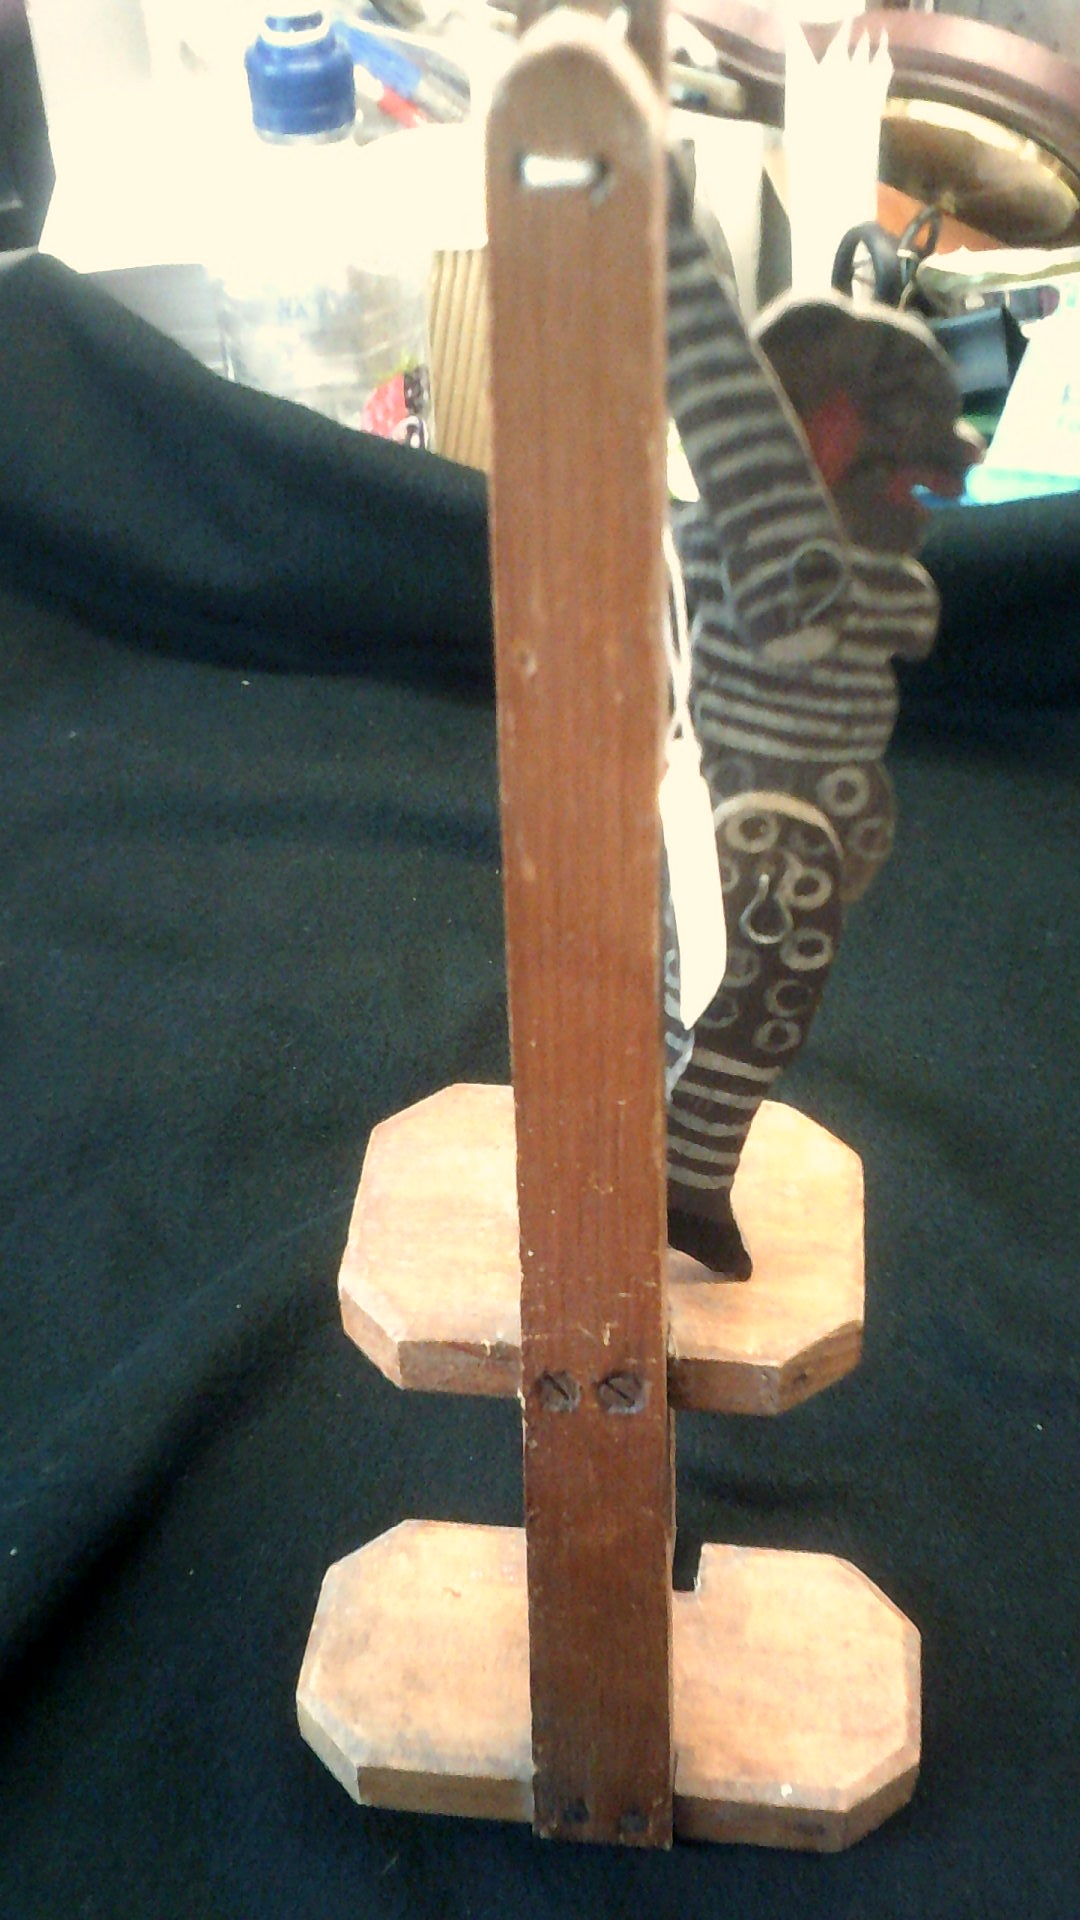 Lot 393 - Vintage Wooden Toy-Acrobat toy, works well, lots of pleasure